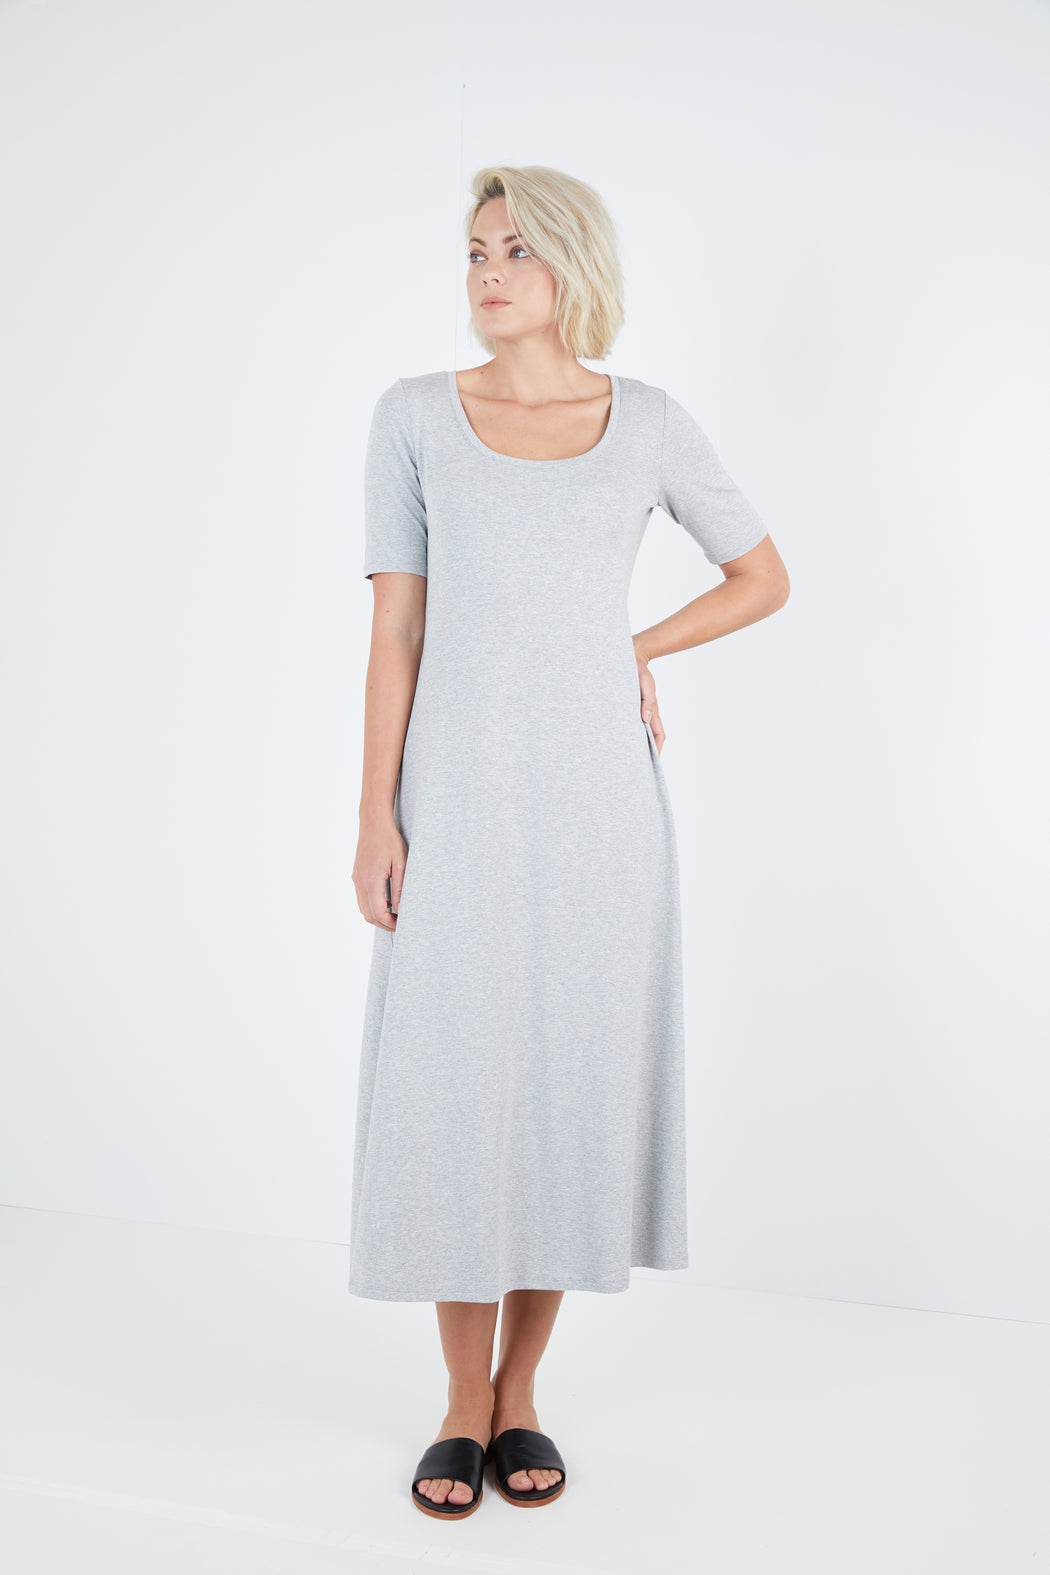 Scoop Neck Midi Dress With Back Pleat - Sale